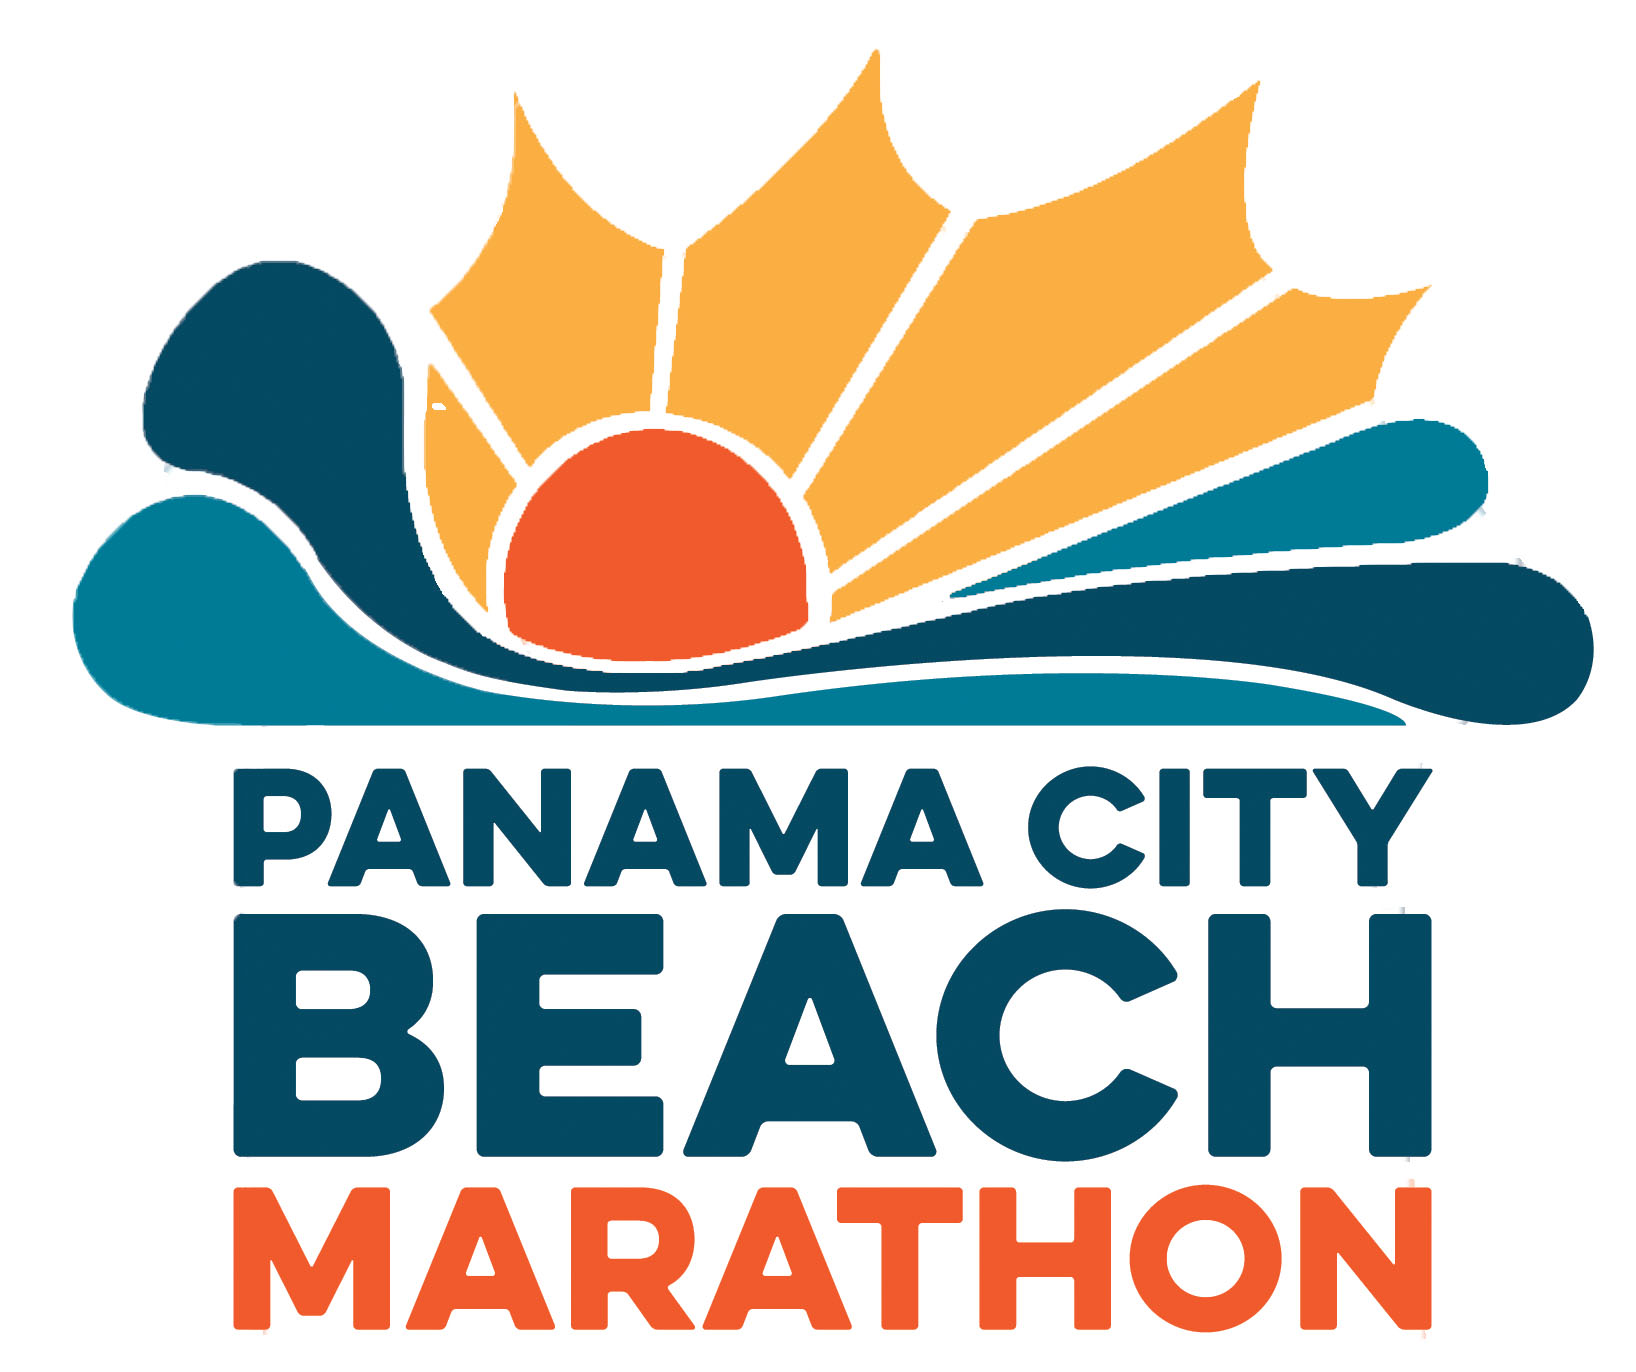 Venture Construction Group of Florida Sponsors Panama City Beach Marathon